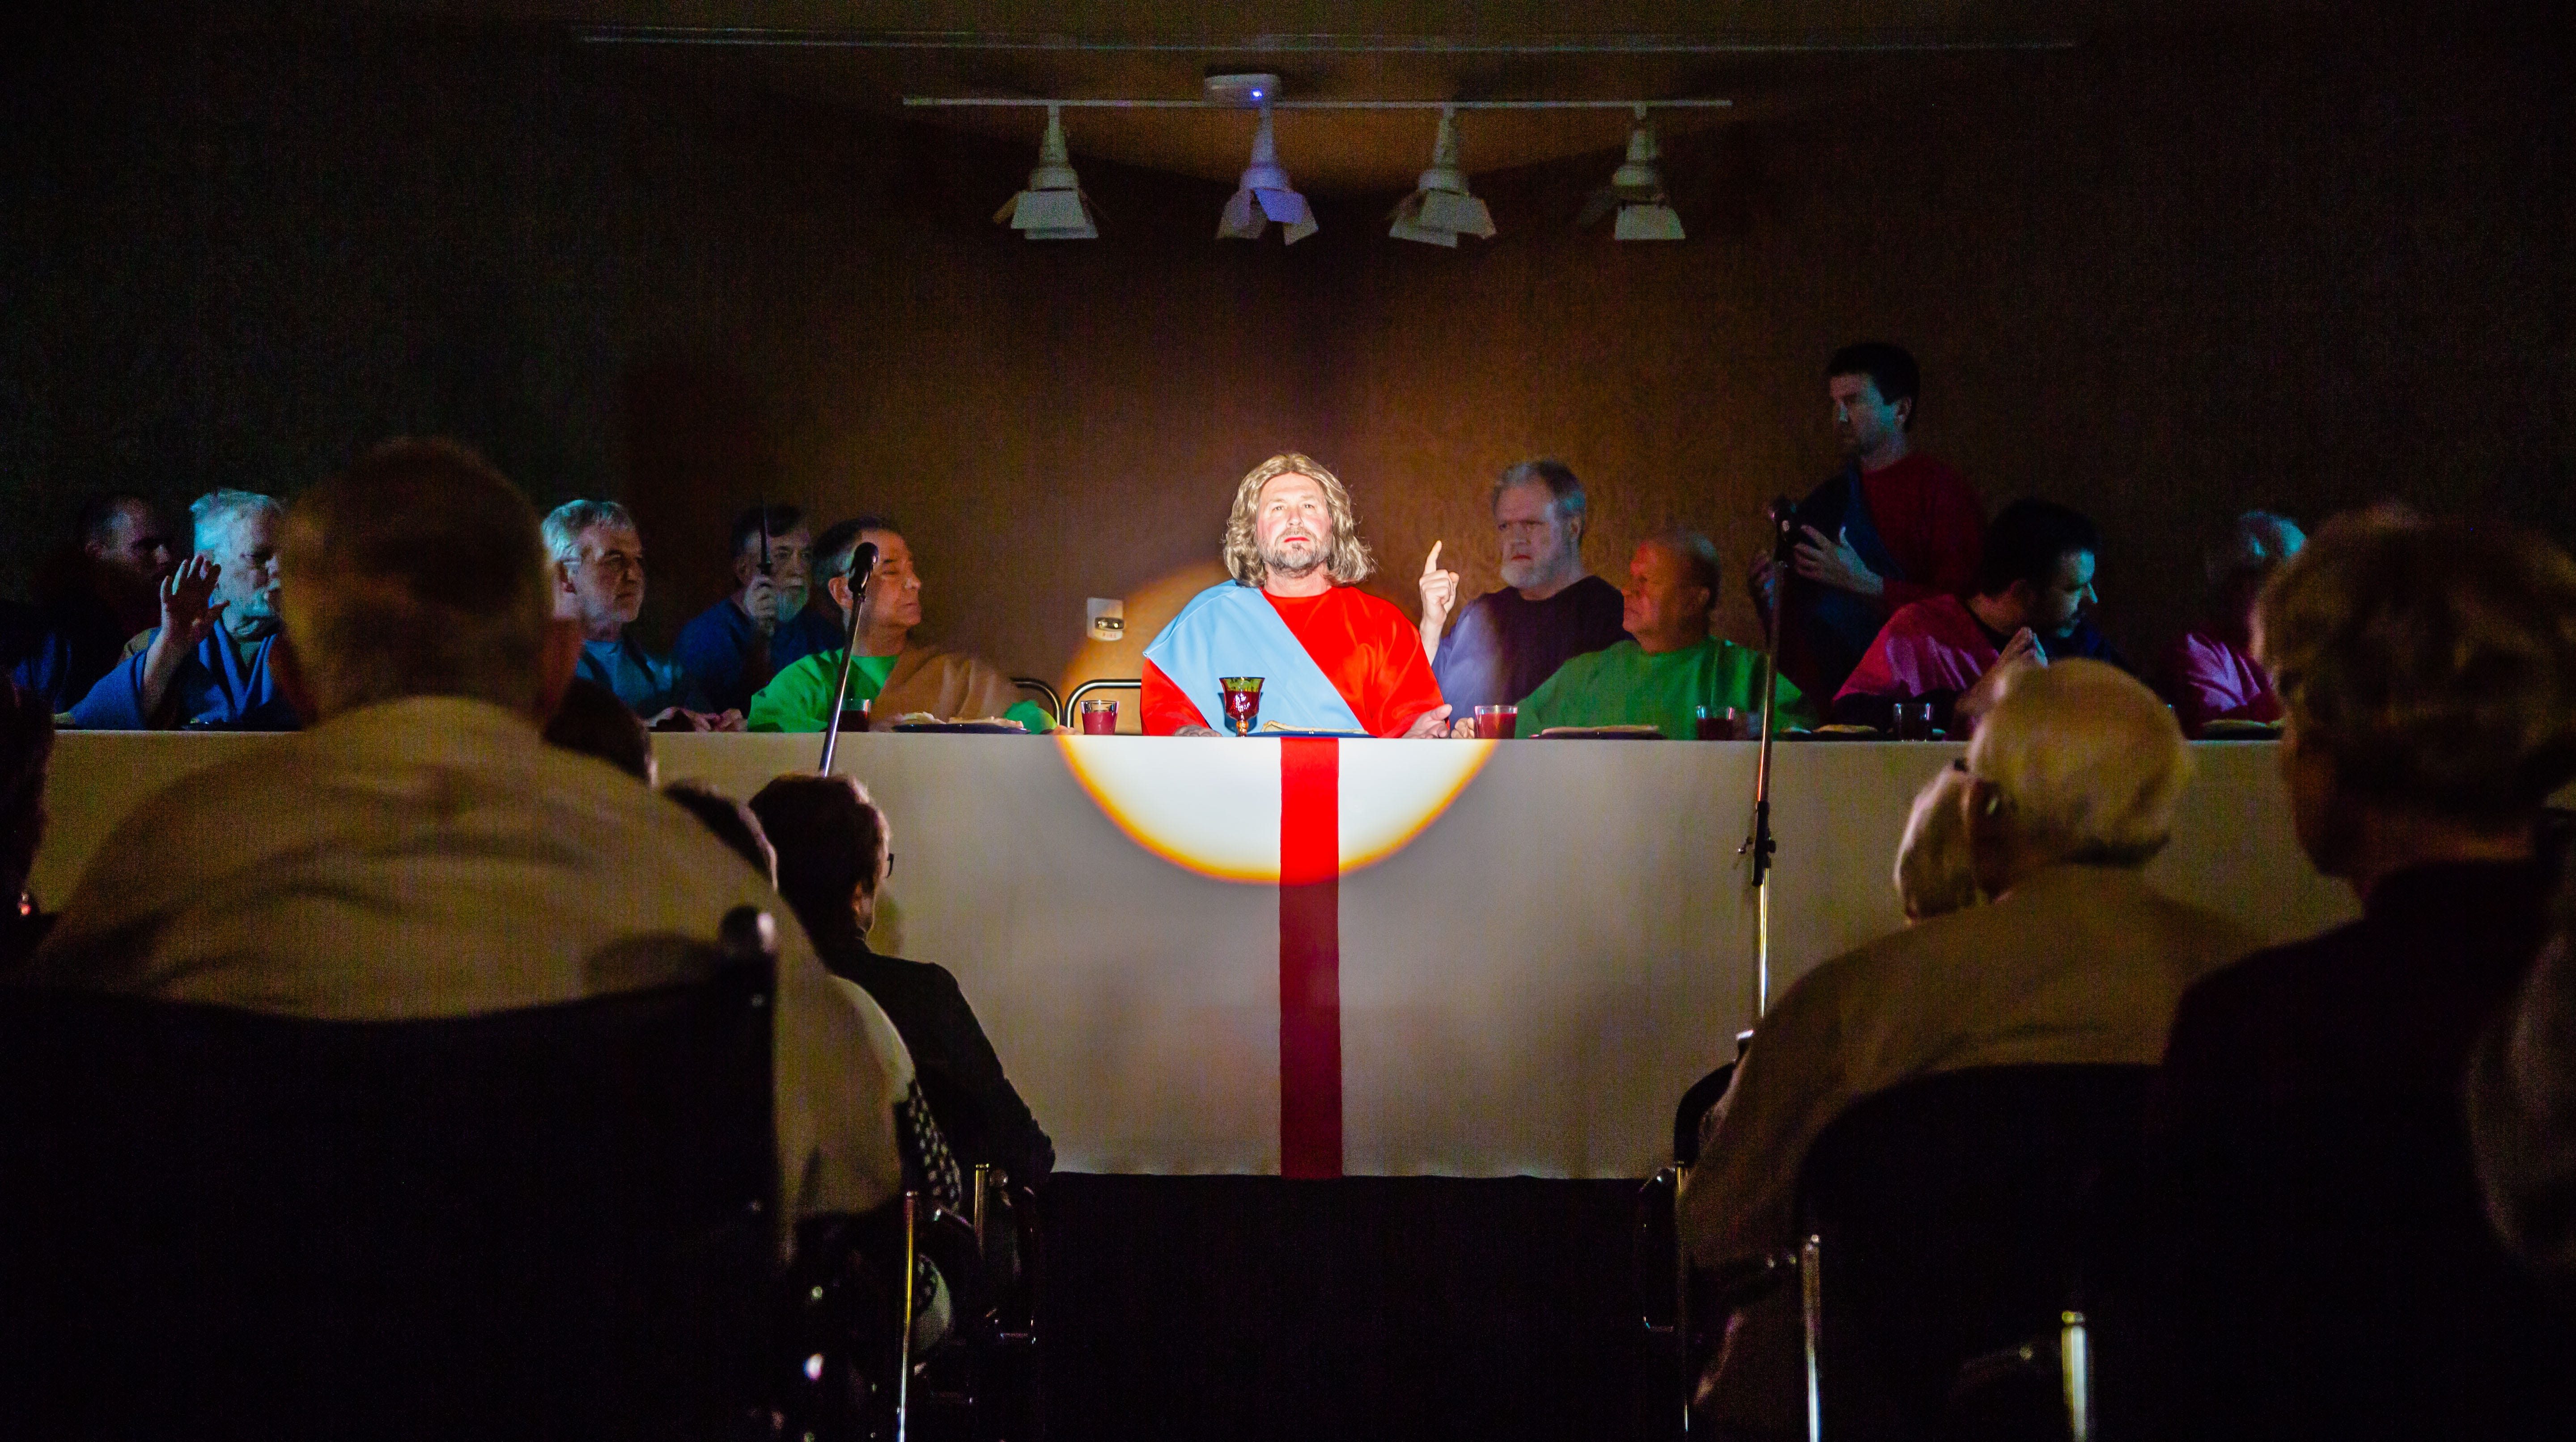 West Des Moines church's 'Last Supper' drama marks 50th year